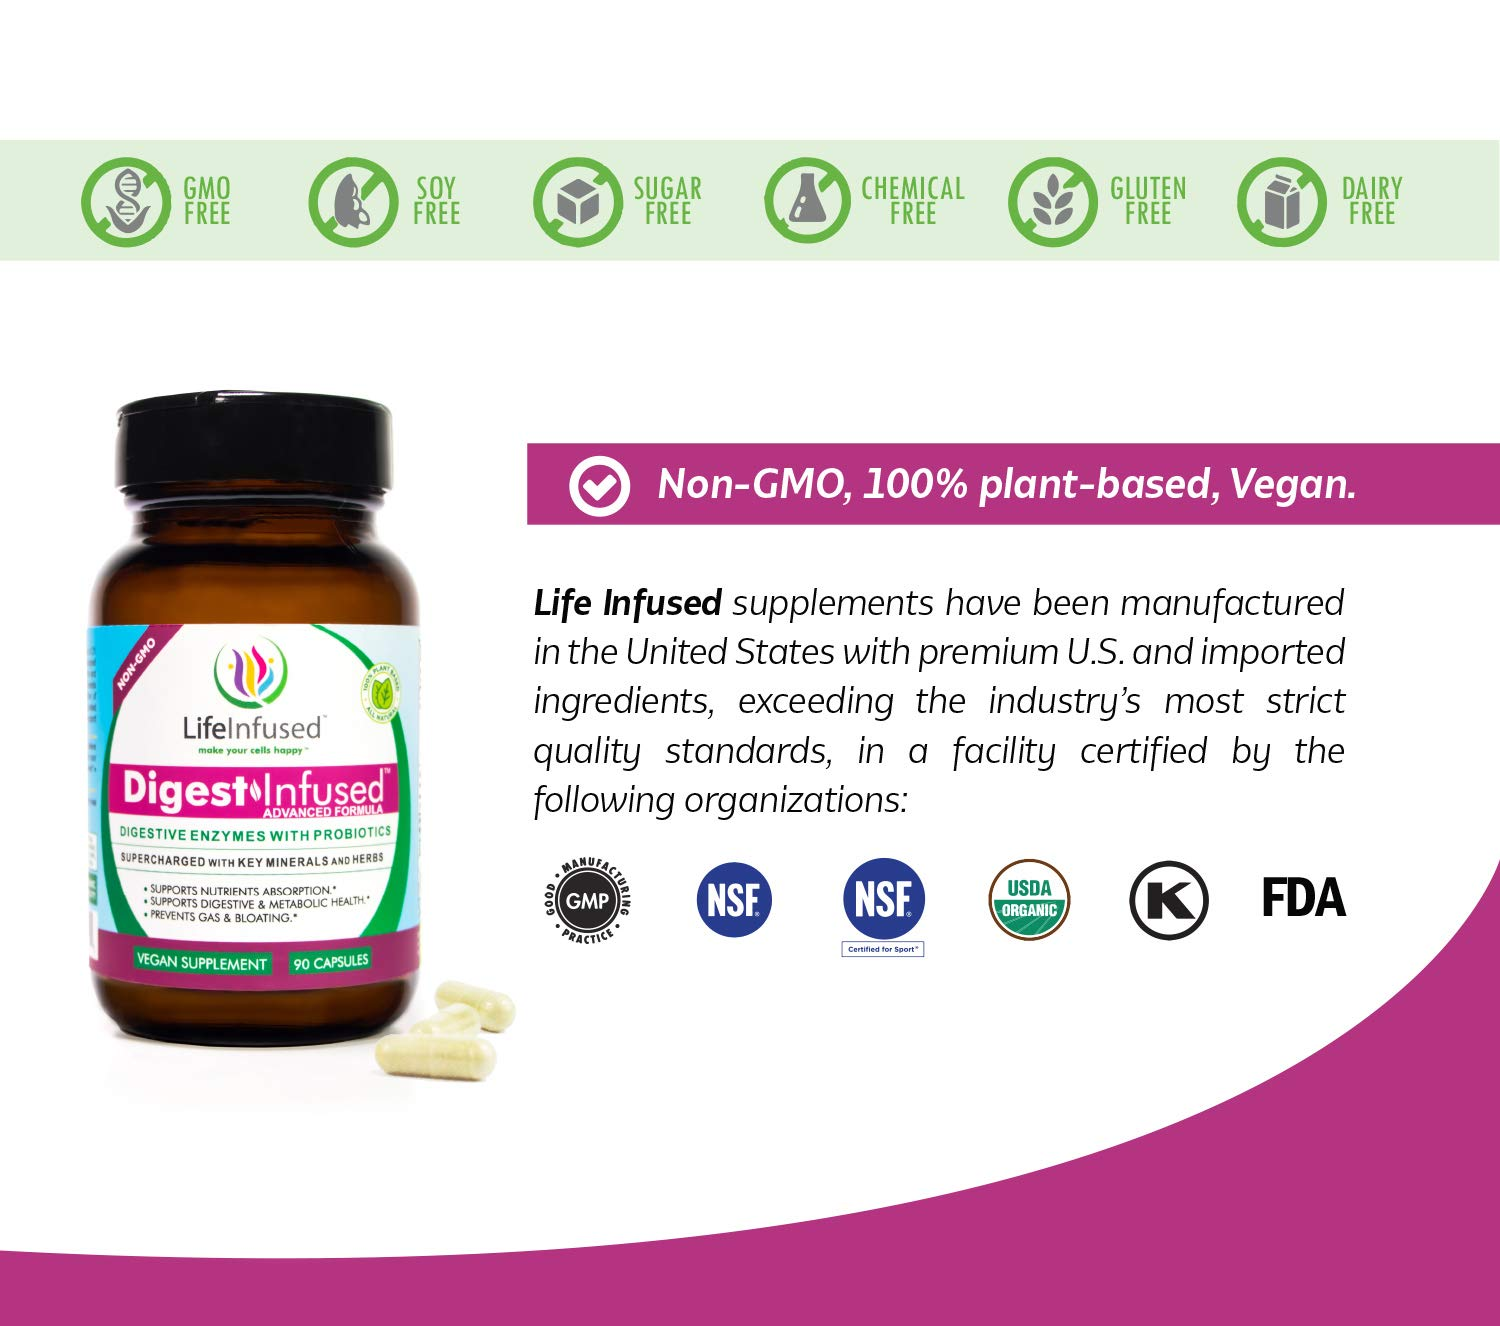 Life Infused® Digest Infused™ Digestive Enzymes with Probiotics Supplements. Twenty One Plant-Based Enzymes Plus Minerals and Algae. Vegan Approved.